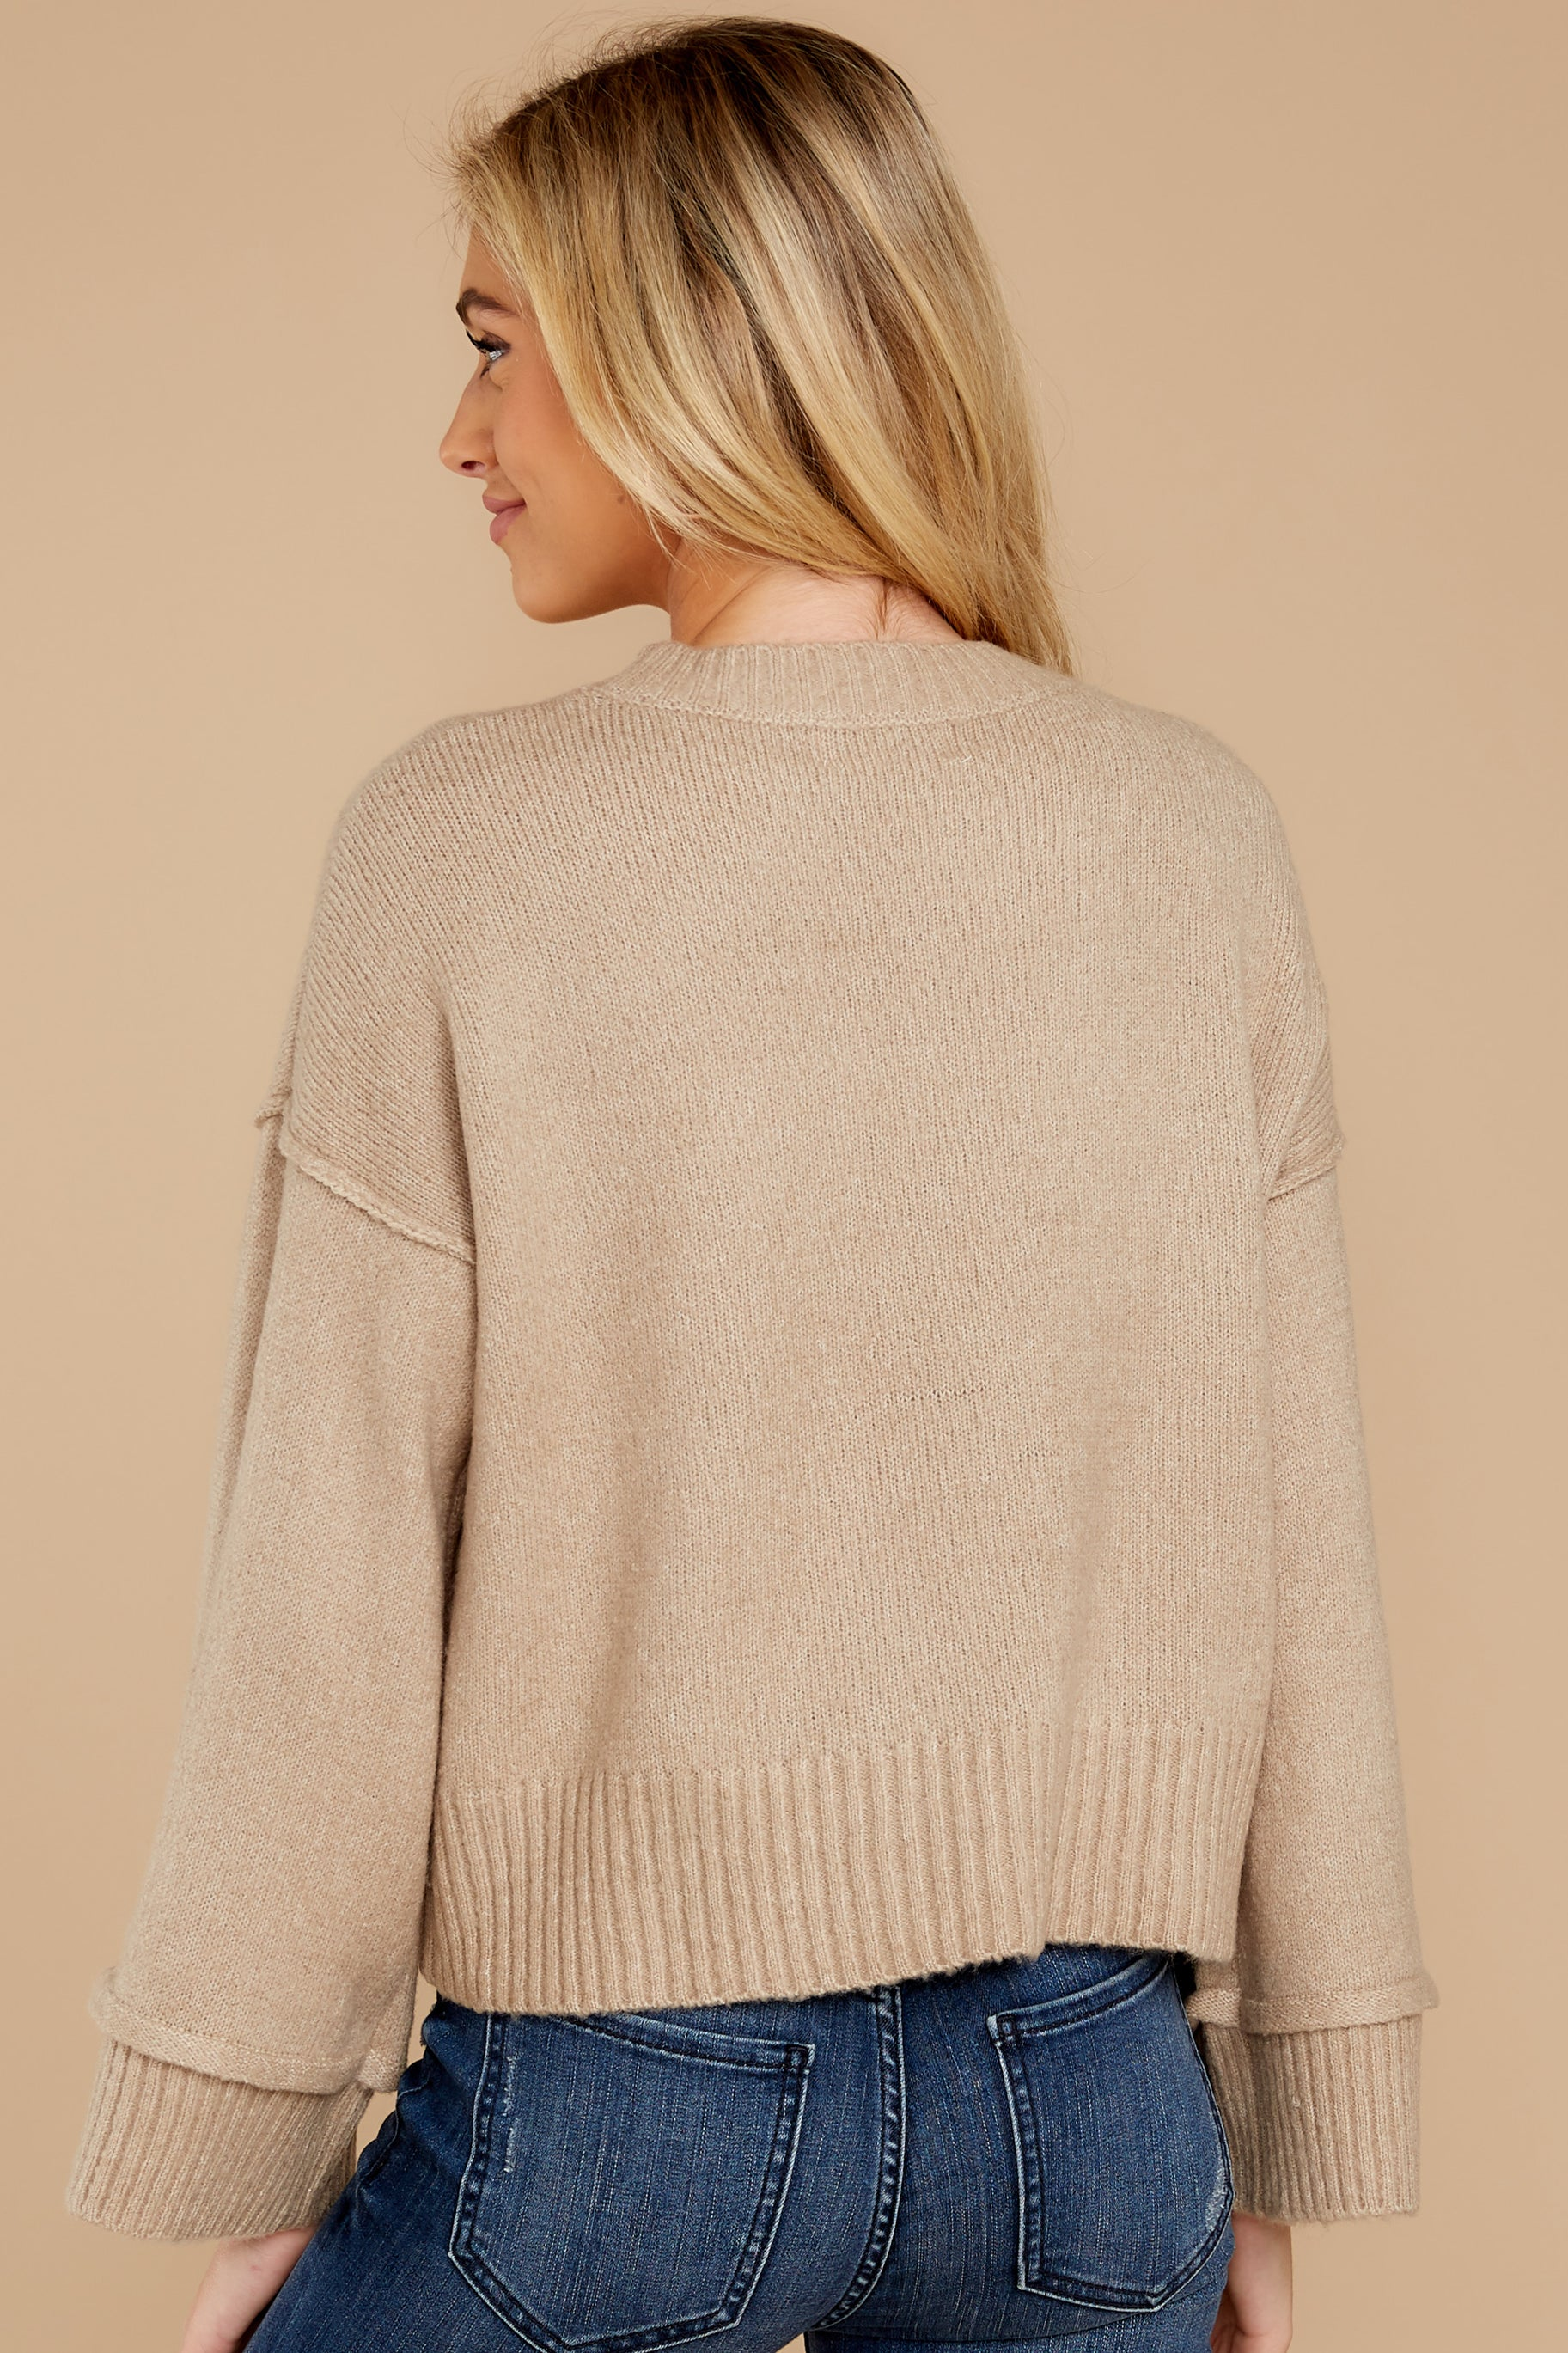 5 Woman About Town Warm Taupe Sweater at reddressboutique.com